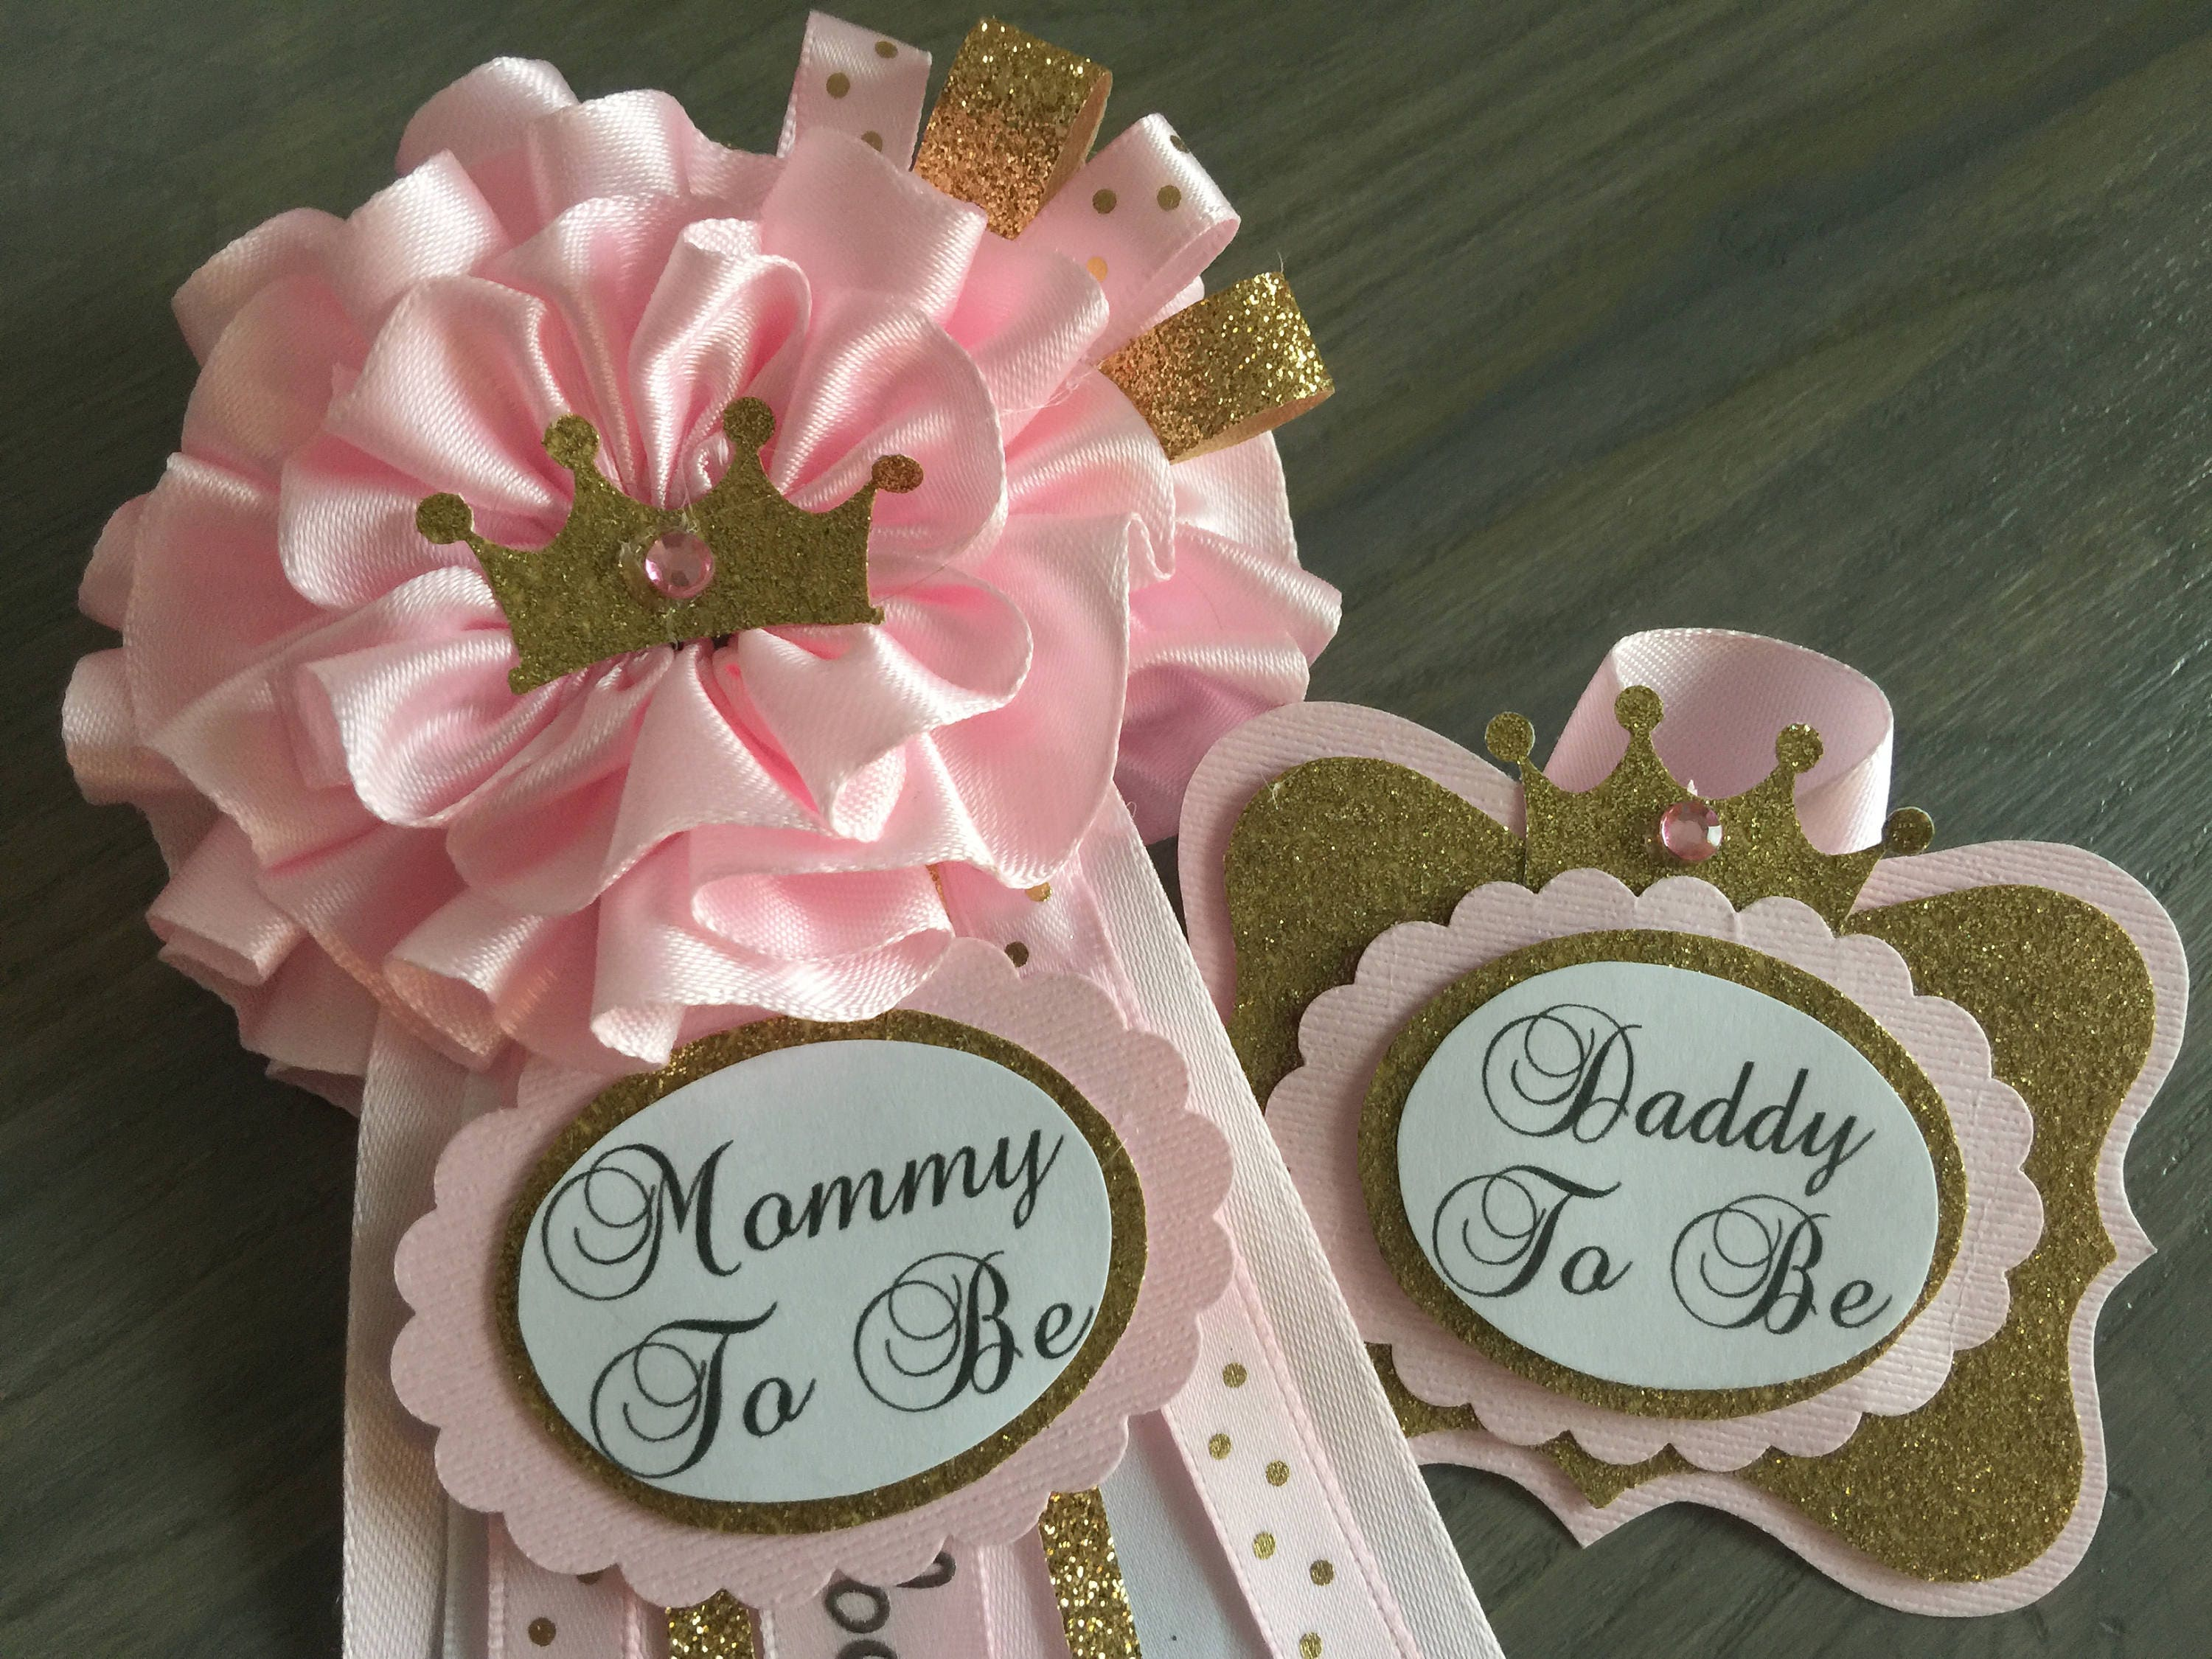 Mommy and Daddy to Be Pin PrincessPink Flower Crown Pink | Etsy